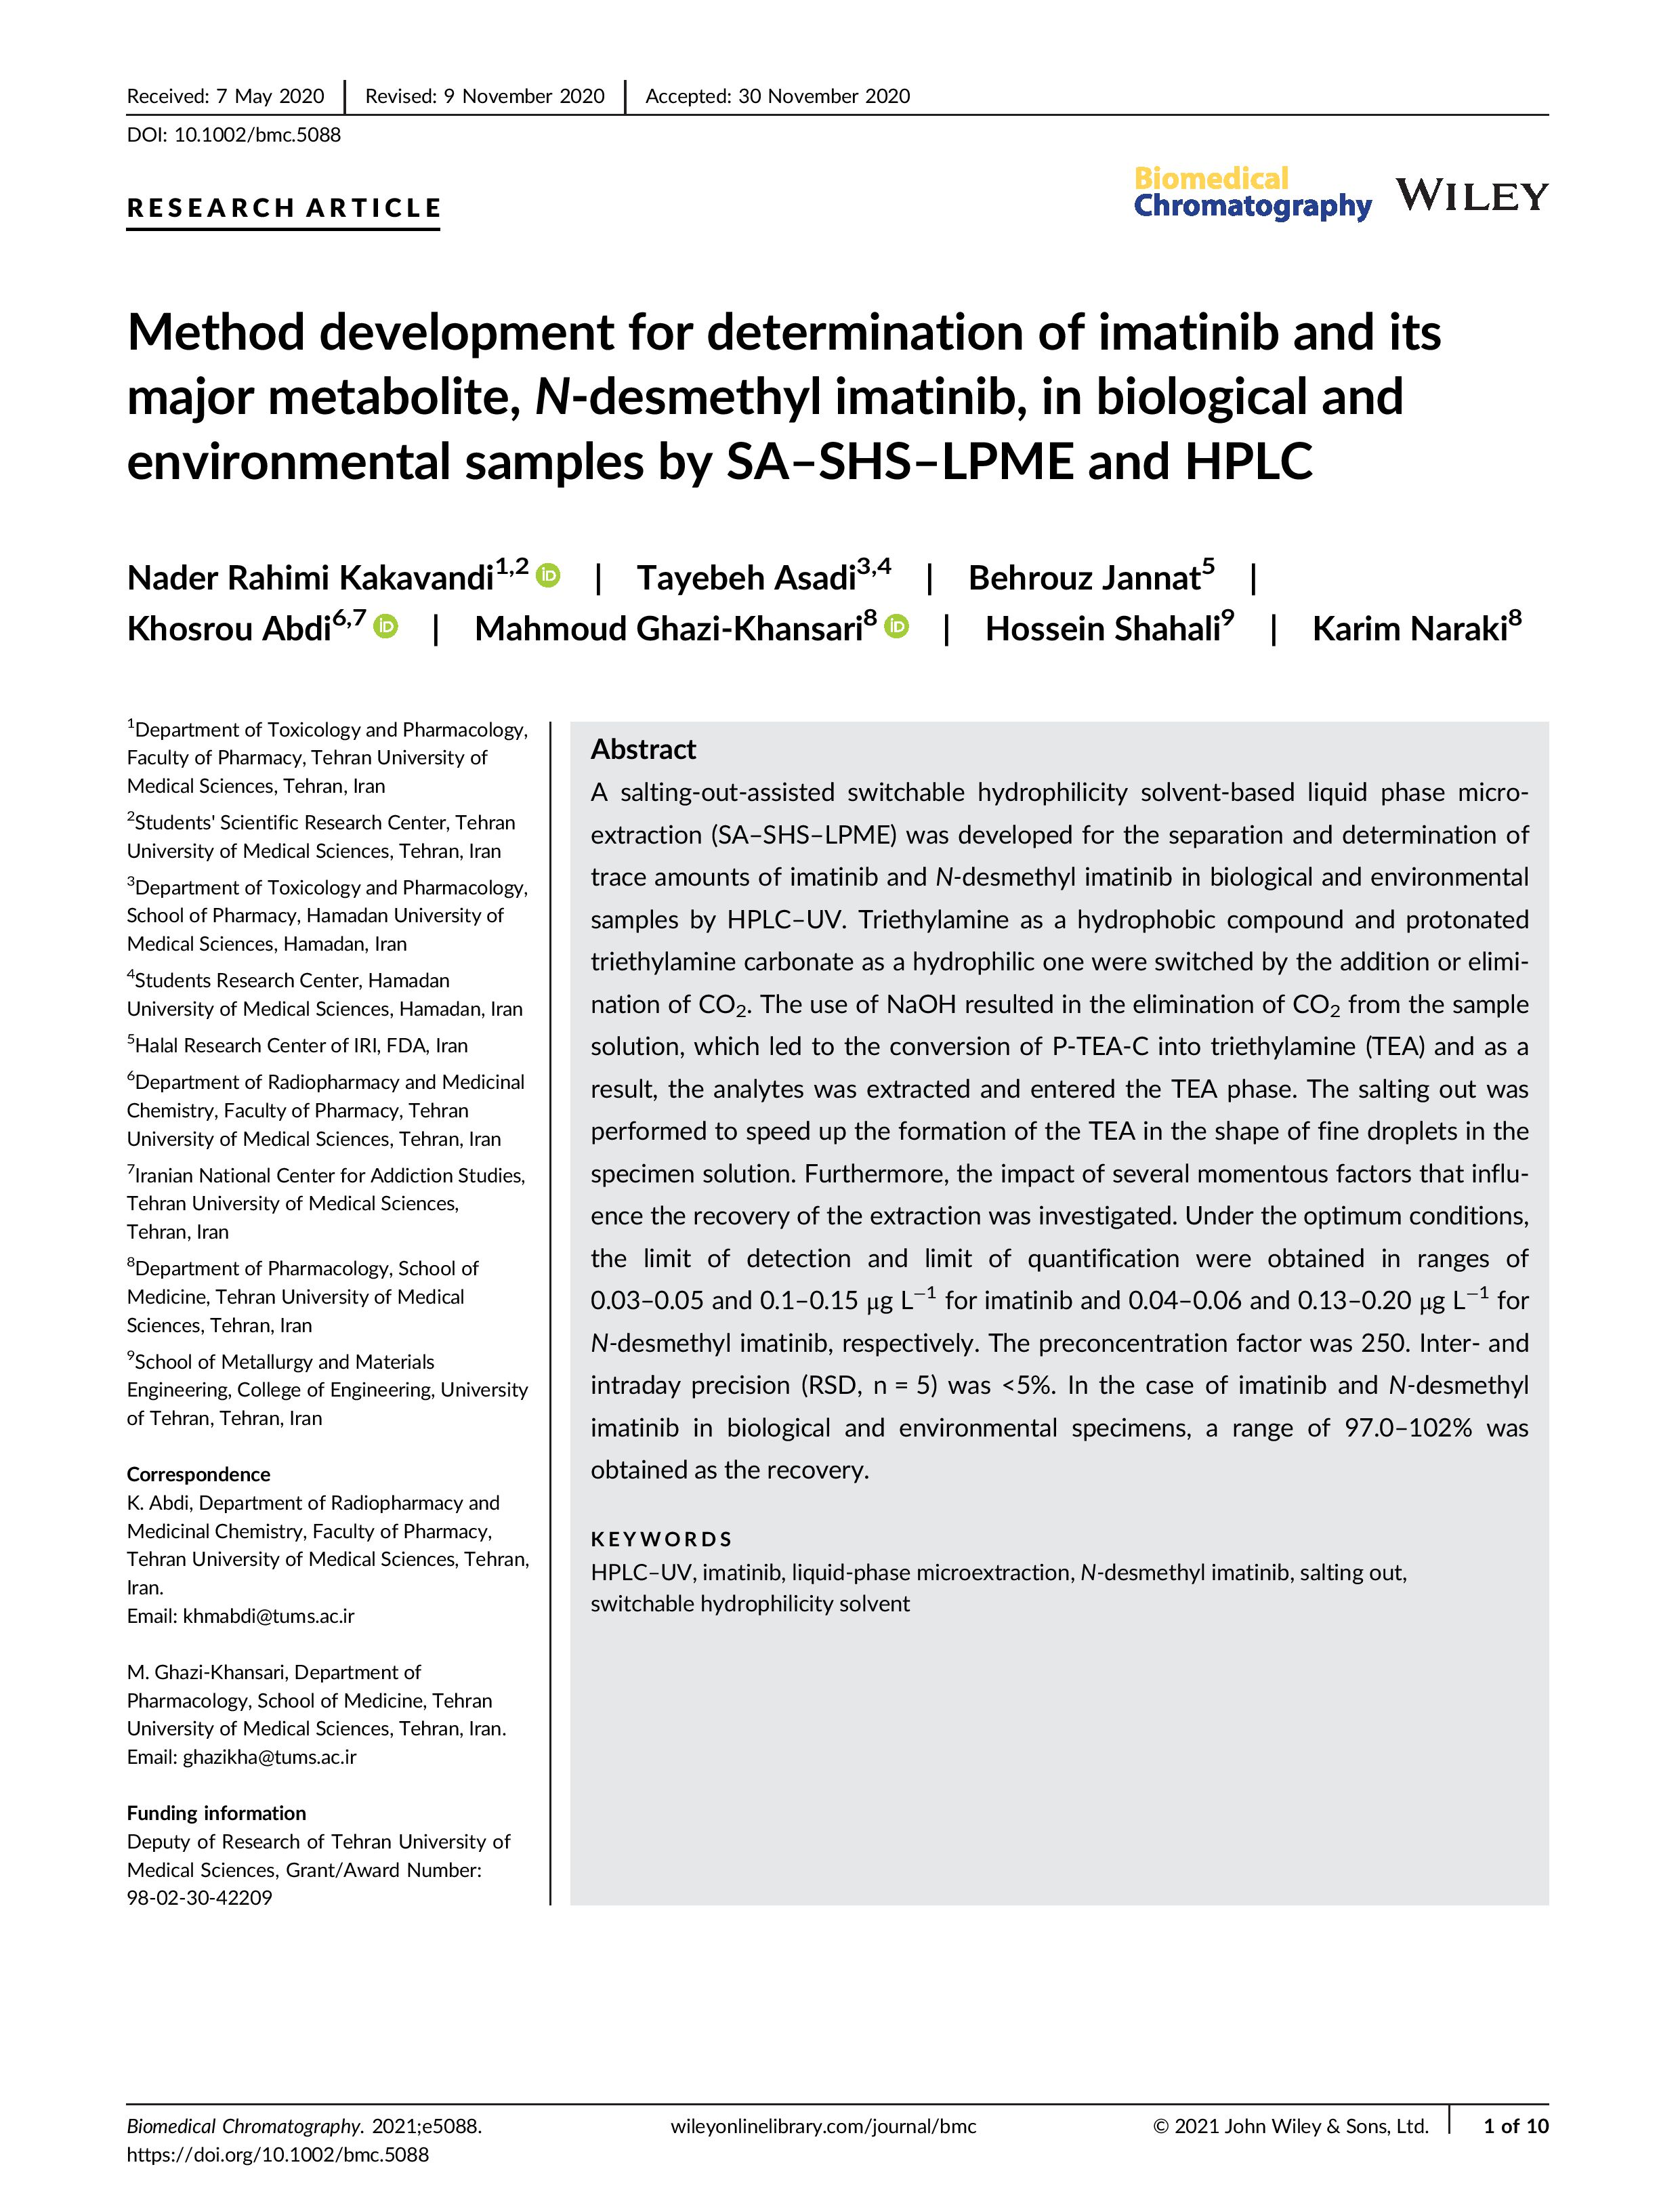 Method development for determination of imatinib and its major metabolite, N-desmethyl imatinib, in biological and environmental samples by SA–SHS–LPME and HPLC